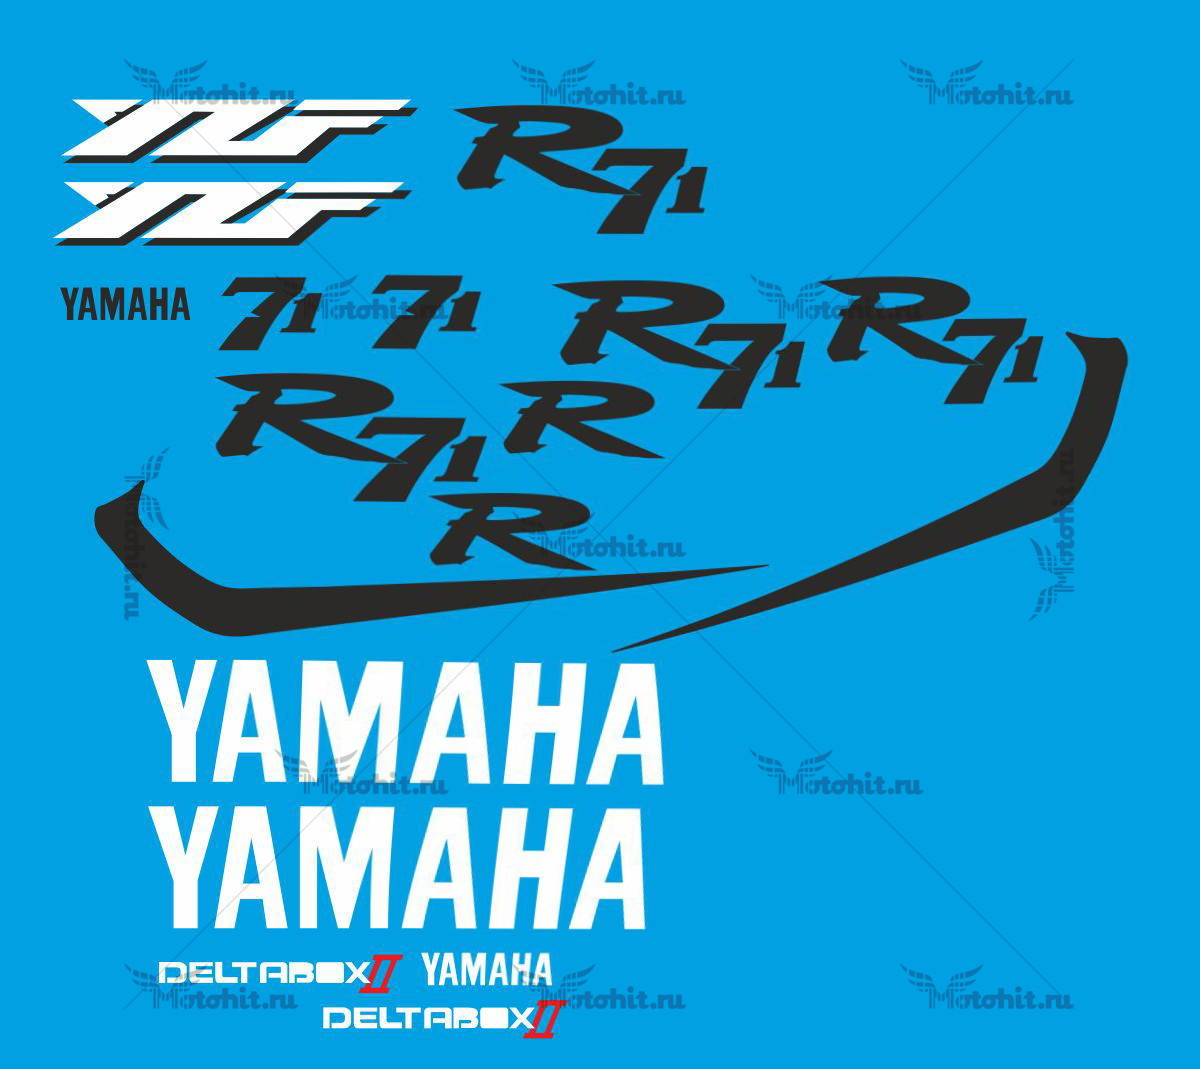 Комплект наклеек Yamaha R71 KIT